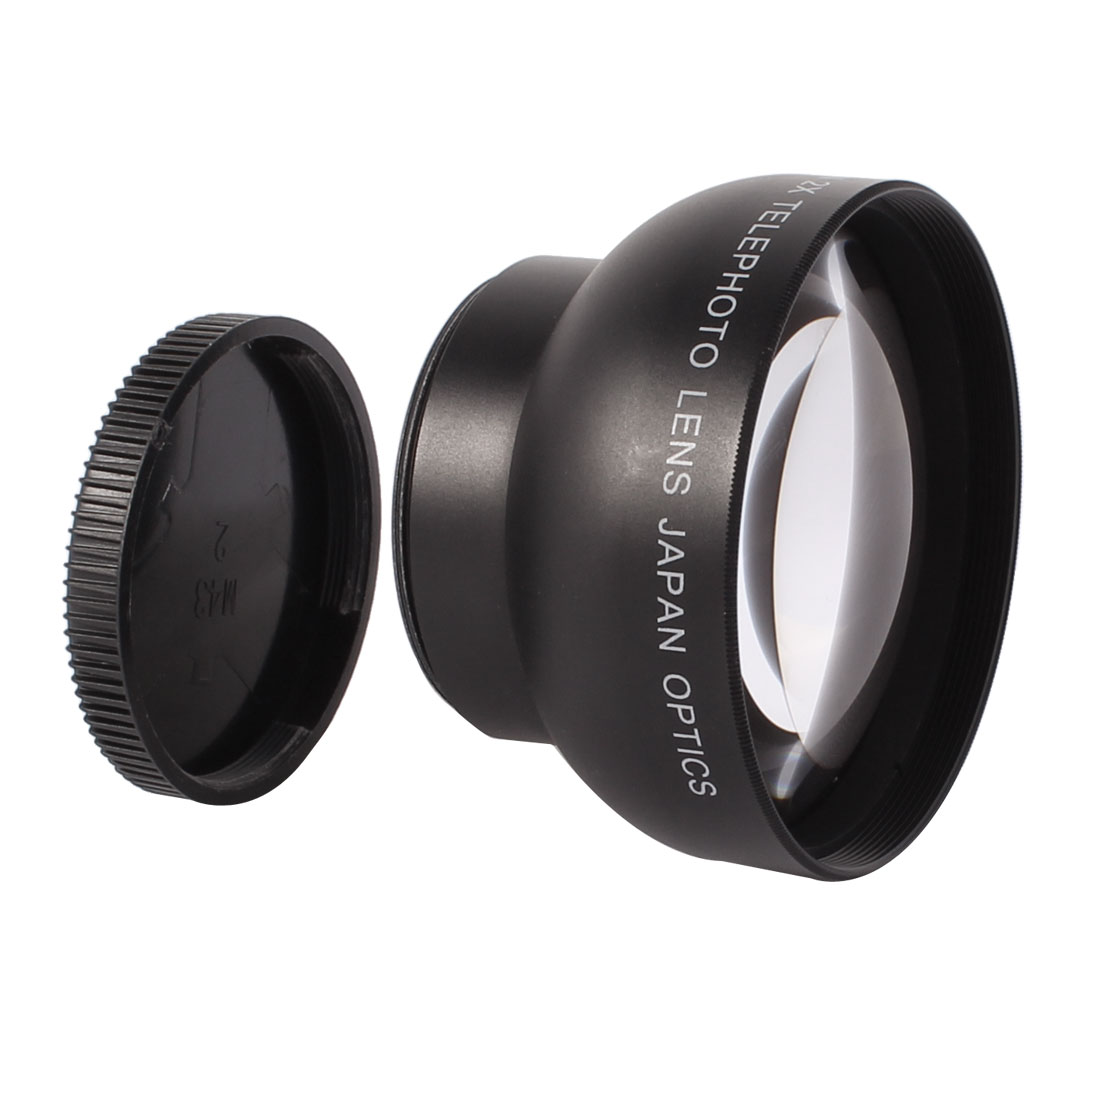 43mm 2X Magnifier Multi Coated Tele Telephoto Lens for Digital DSLR Camera